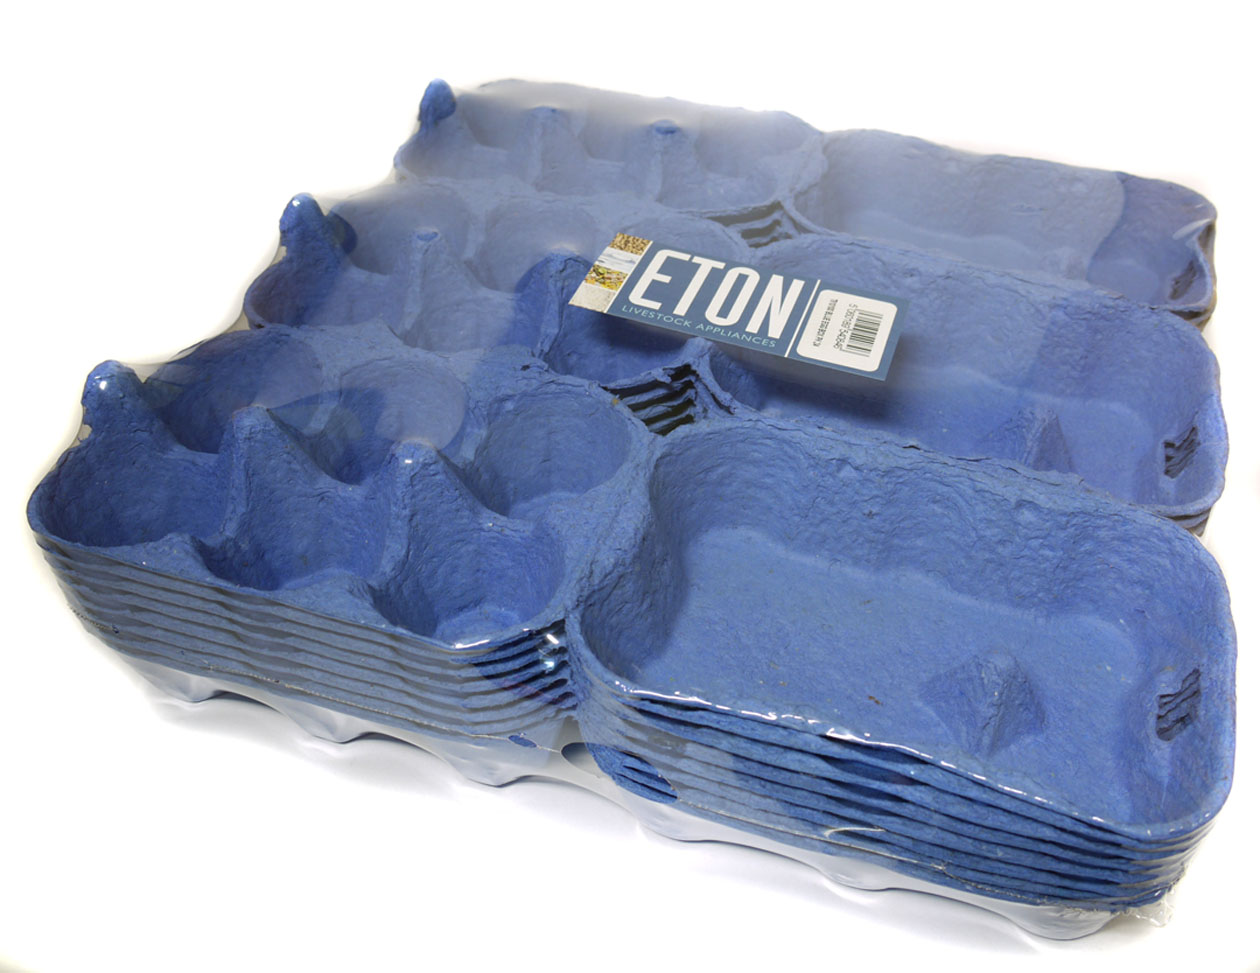 Tusk Eton Blue Egg Boxes